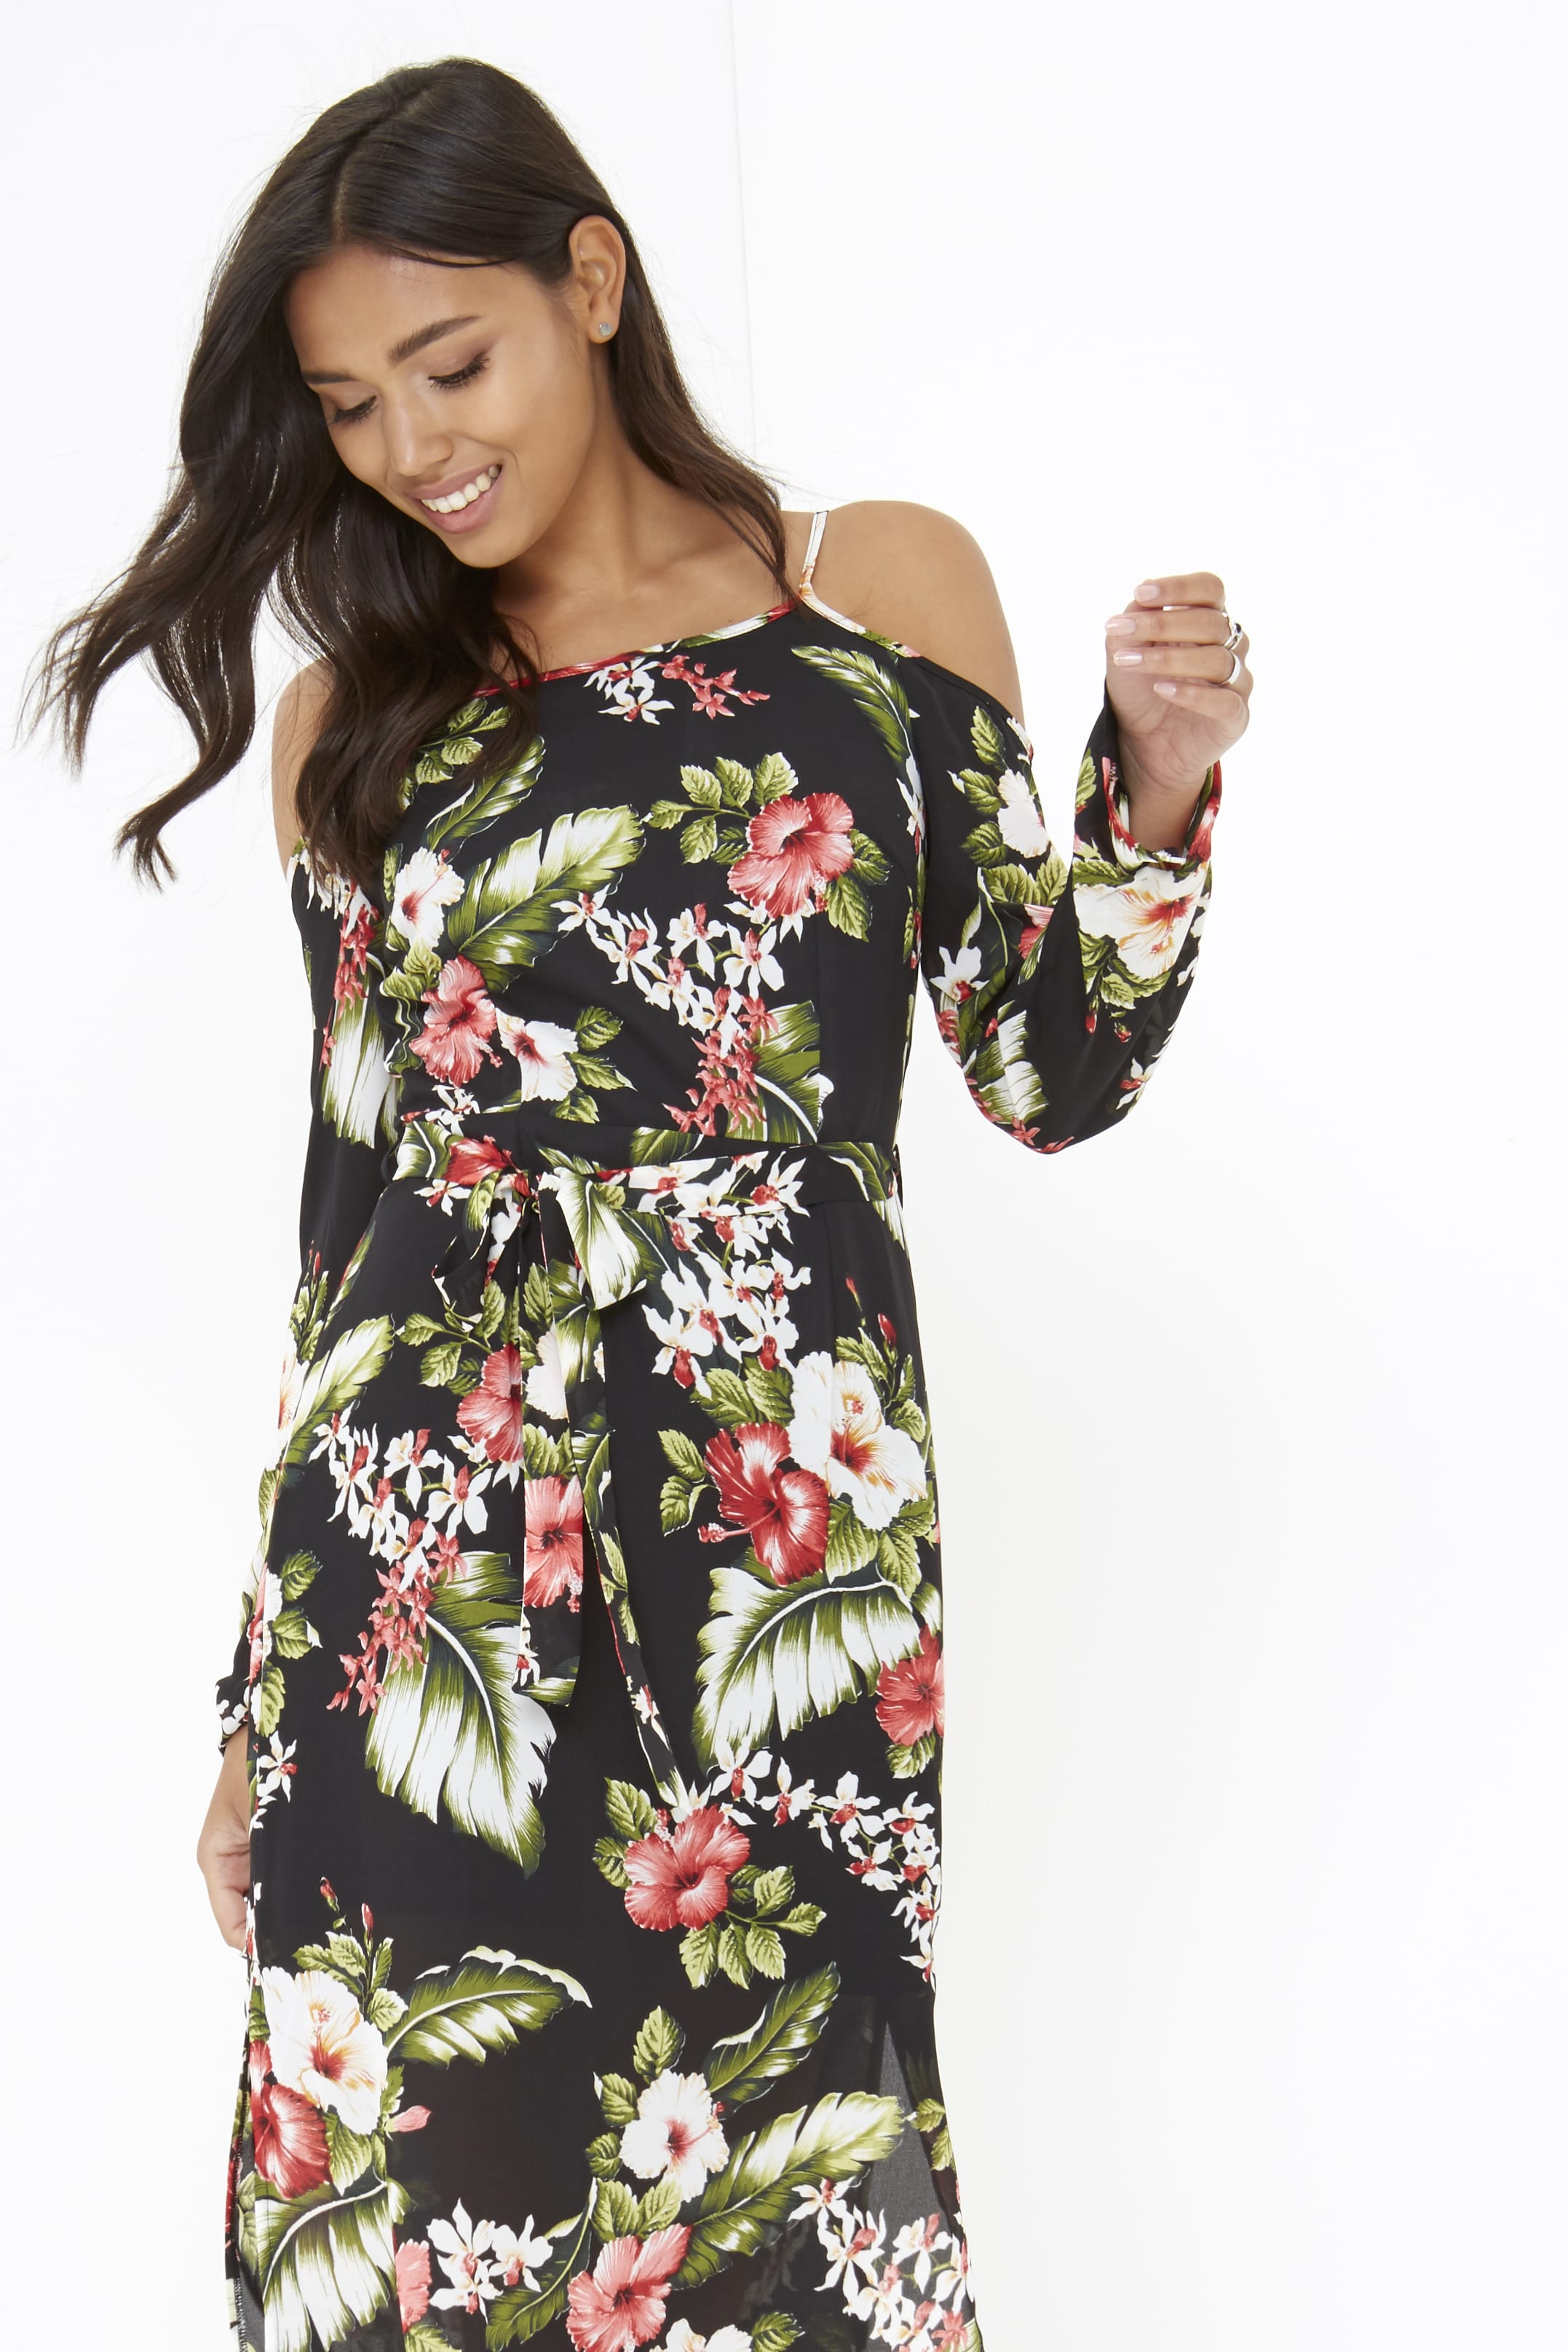 The Must Have Floral Frocks